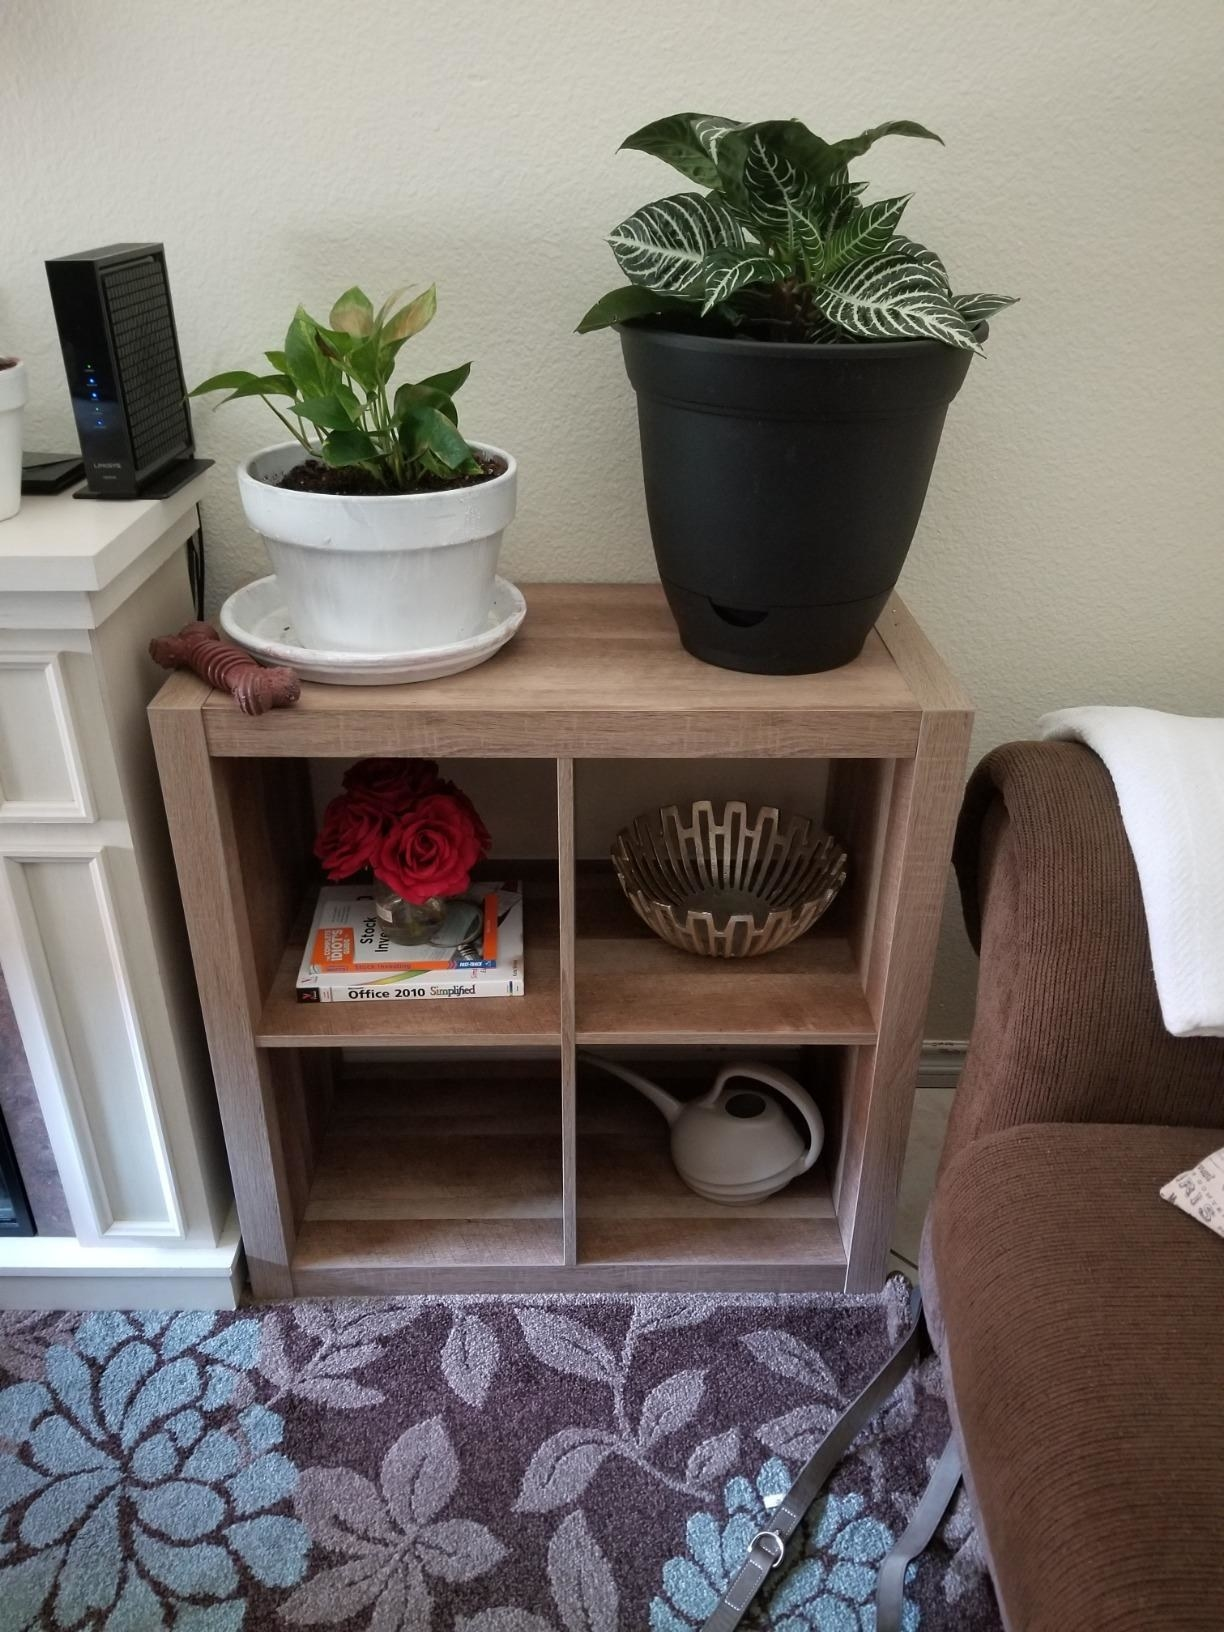 square two by two size light wood bookcase in a reviewer's home